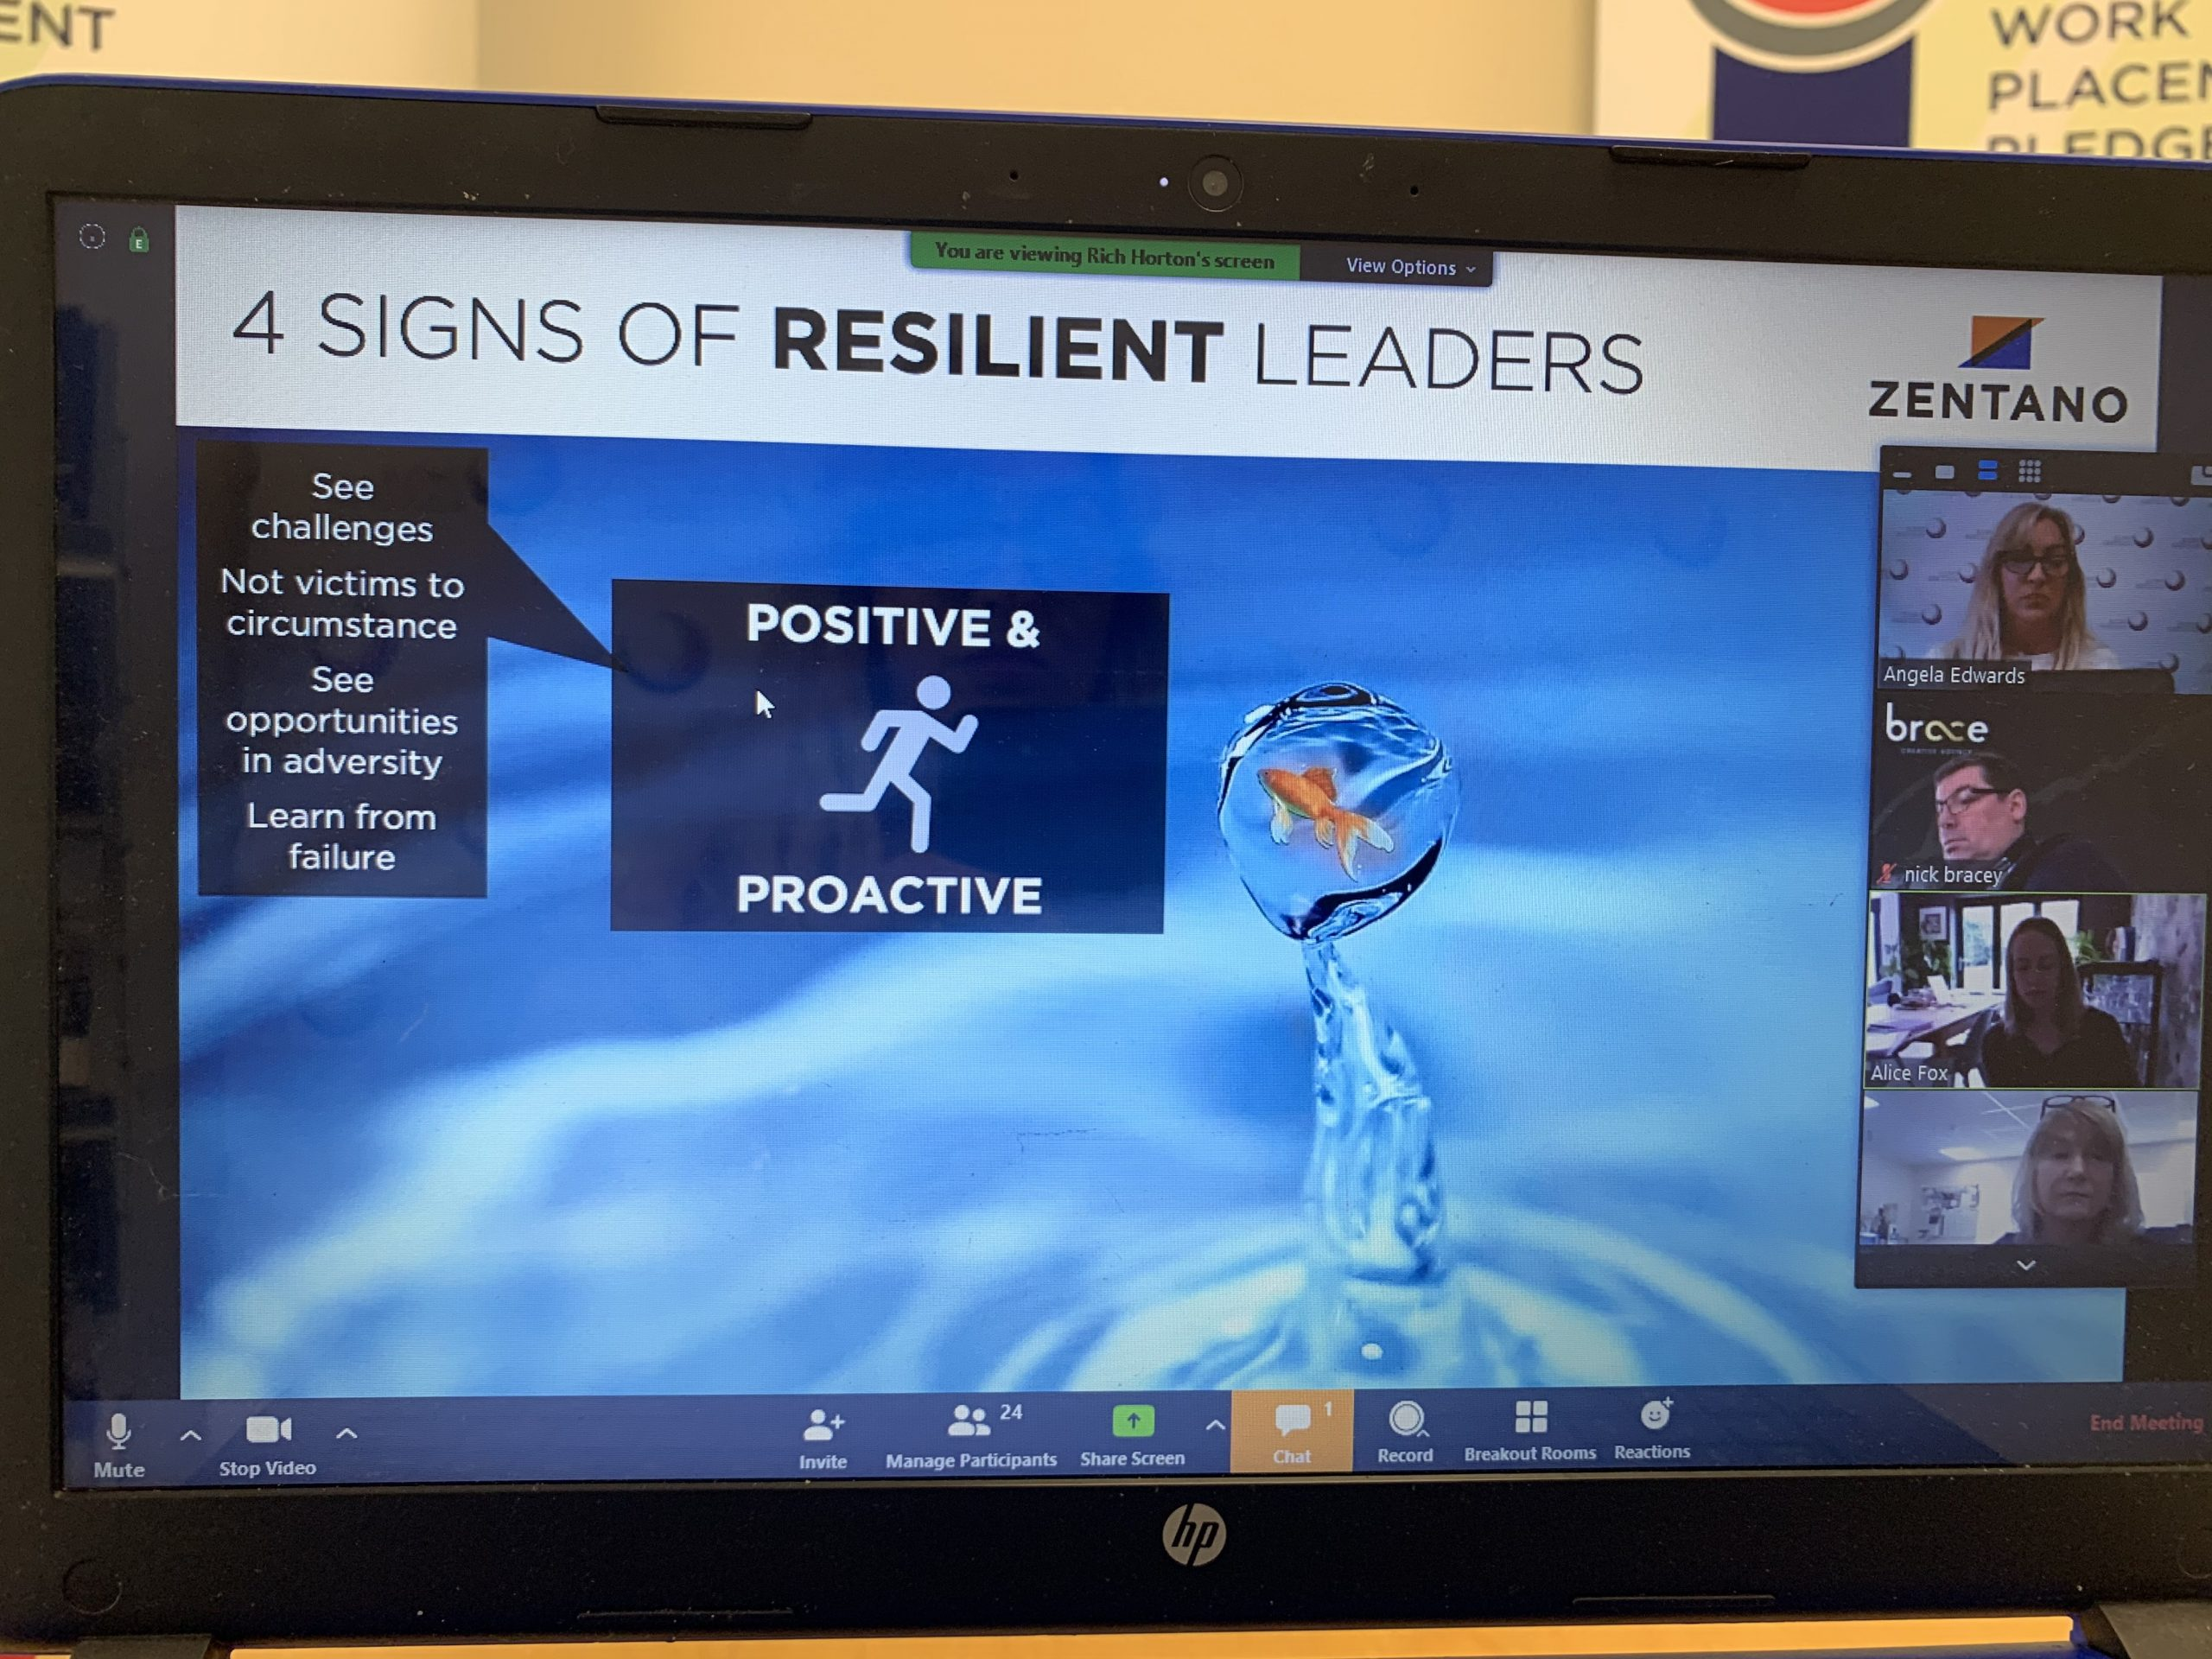 C2S Virtual Event – What Leaders Needs to Know About Resilience with Zentano